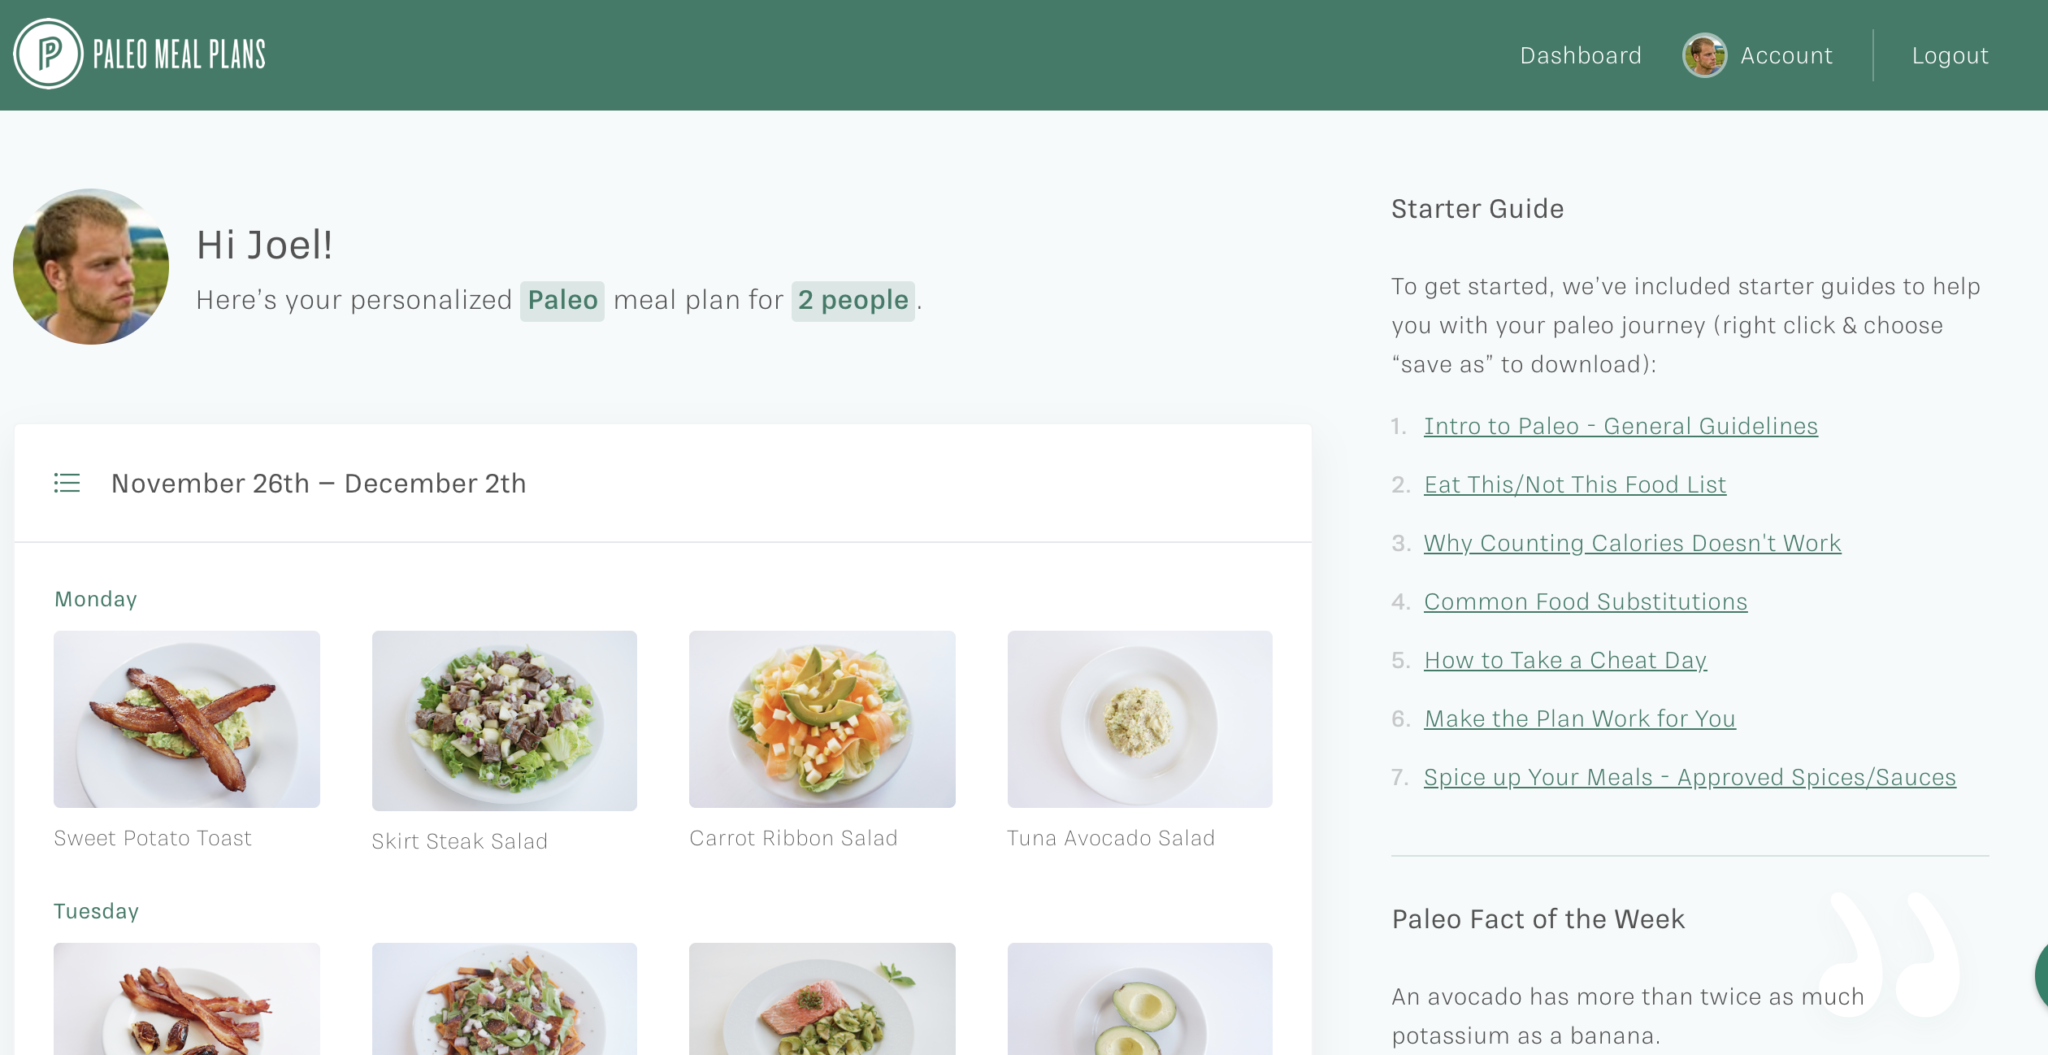 paleo-meal-plans-dashboard